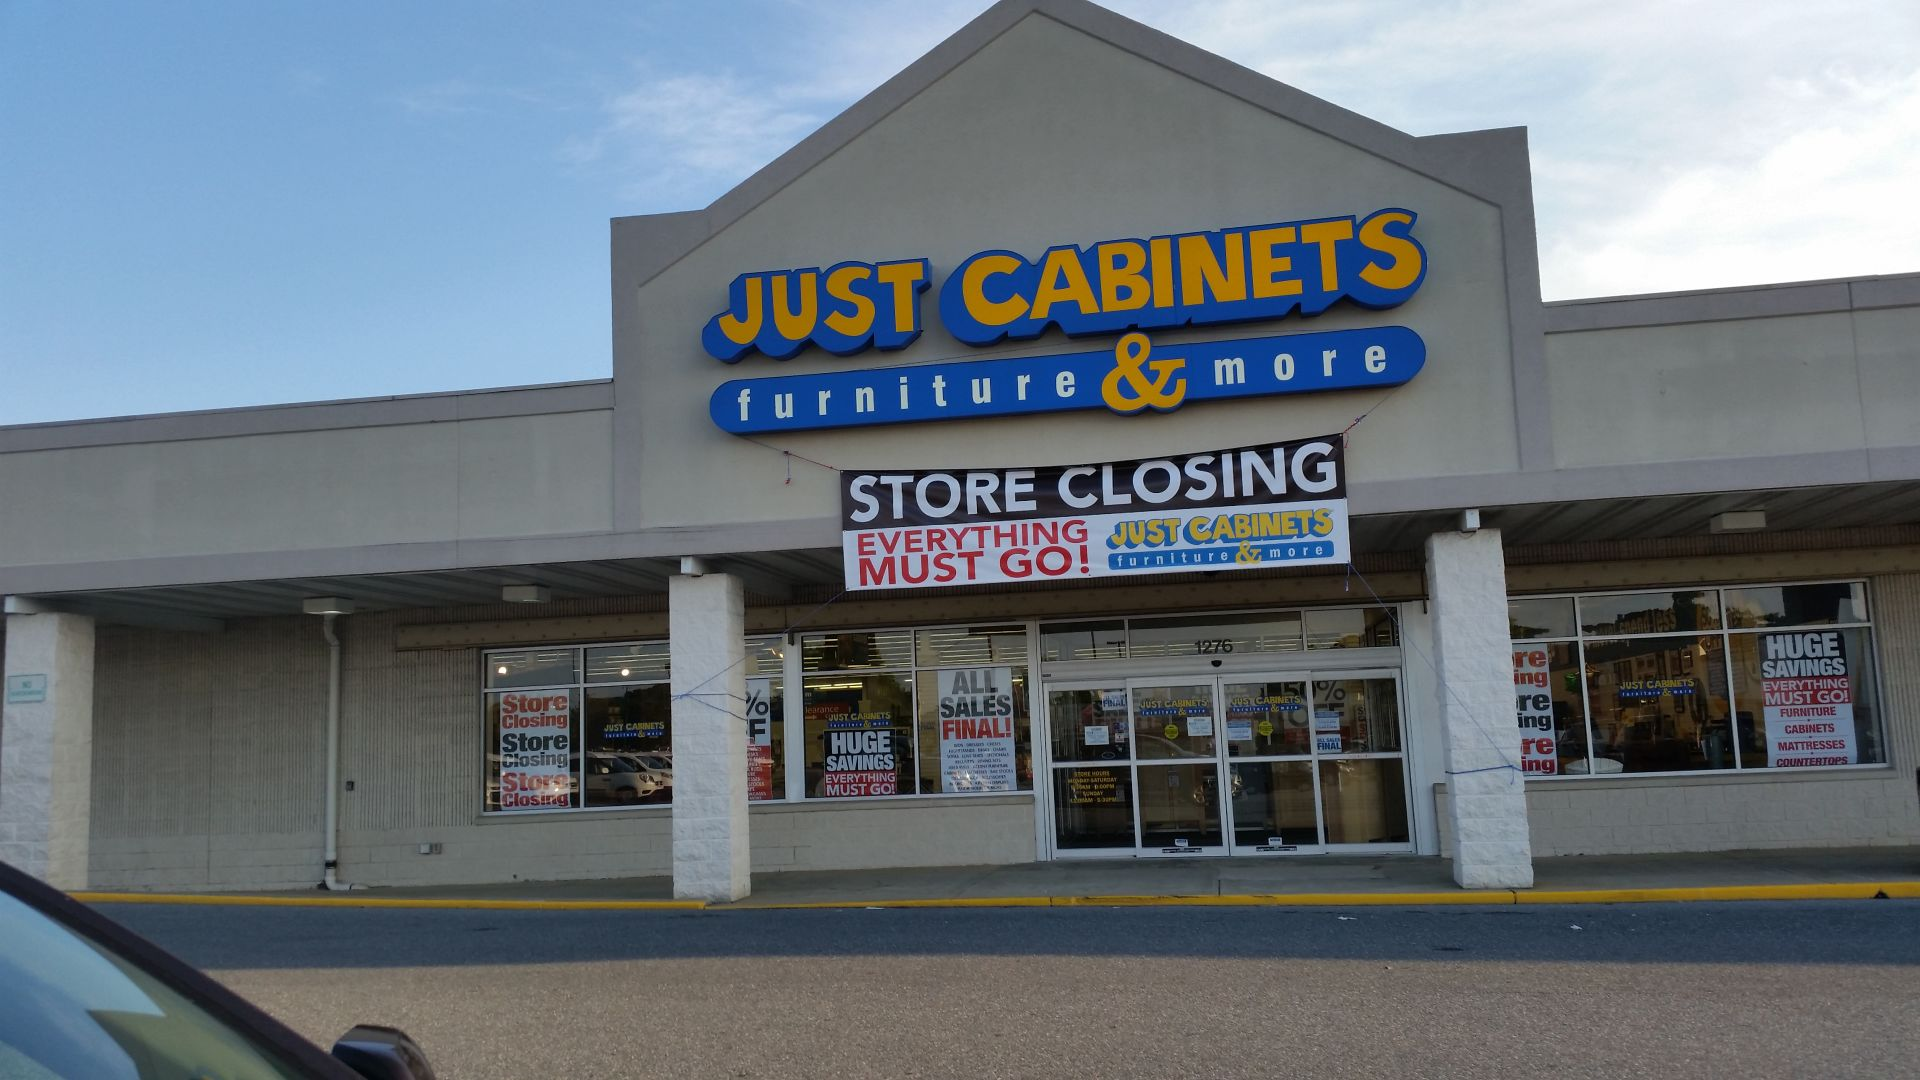 just cabinets to close golden triangle store after 8 years in rh lancasteronline com just cabinets furniture & more mechanicsburg pa just cabinets furniture & more quakertown pa